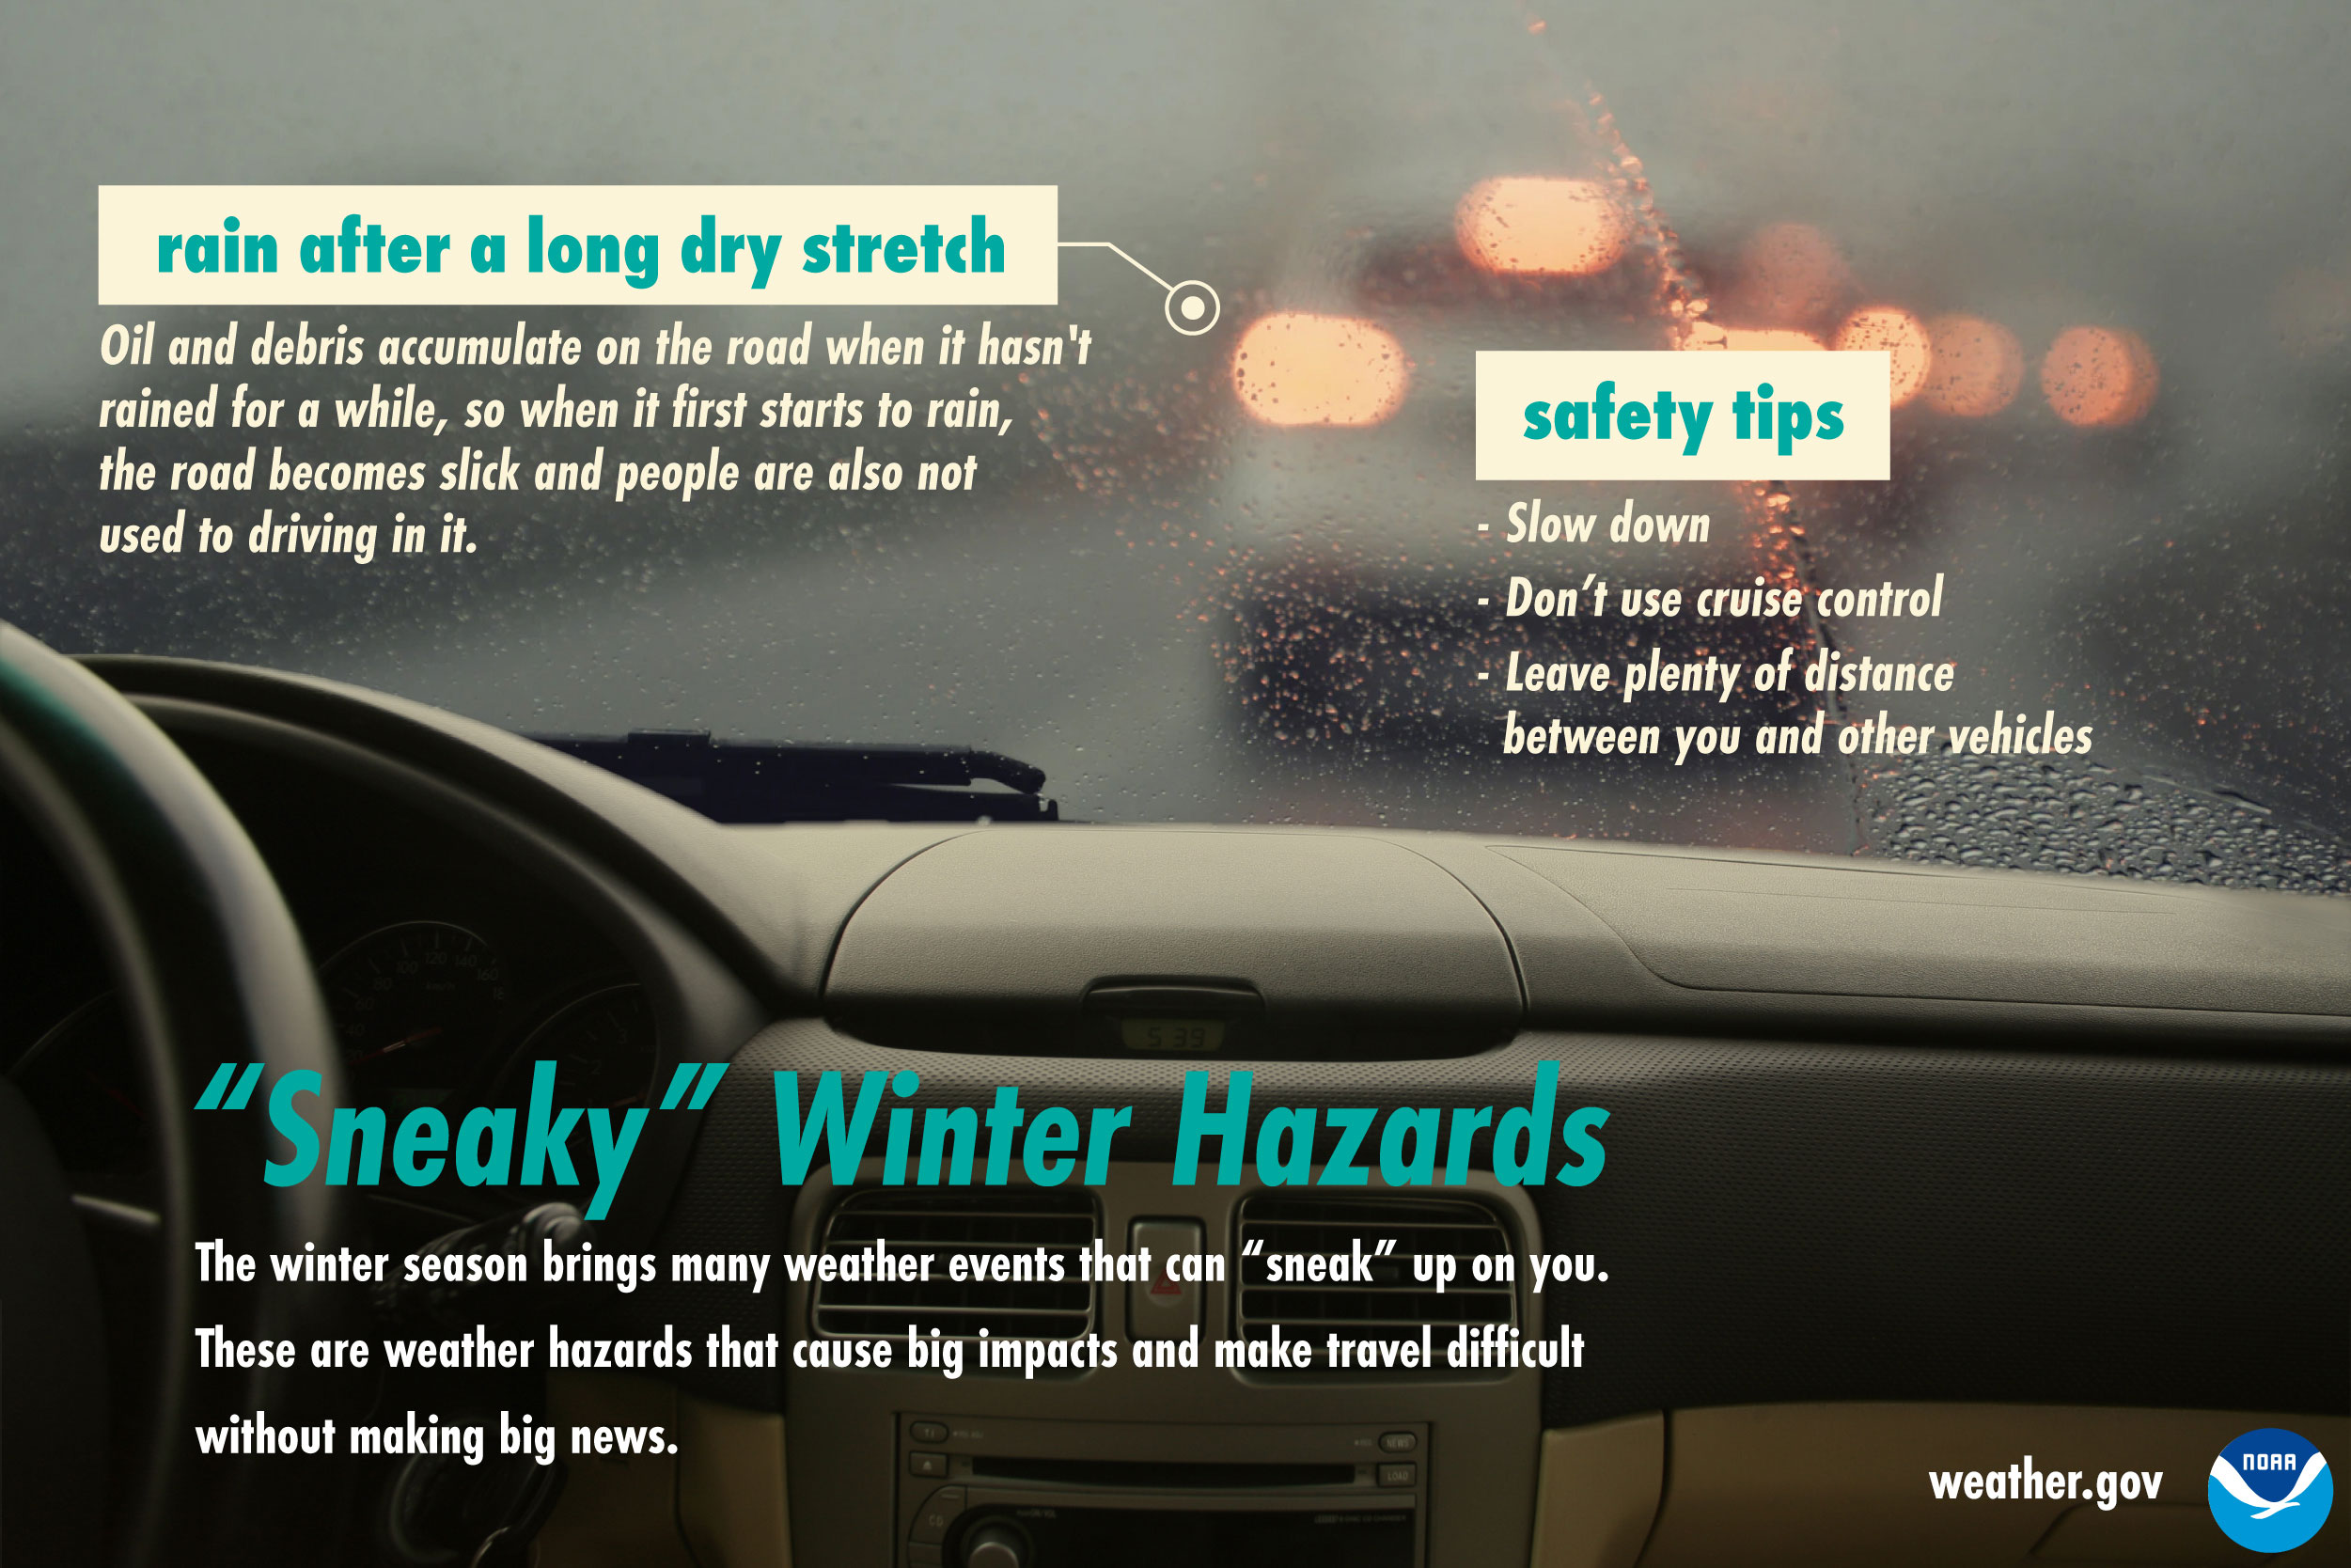 Sneaky Winter Hazards: Rain after a long dry stretch.